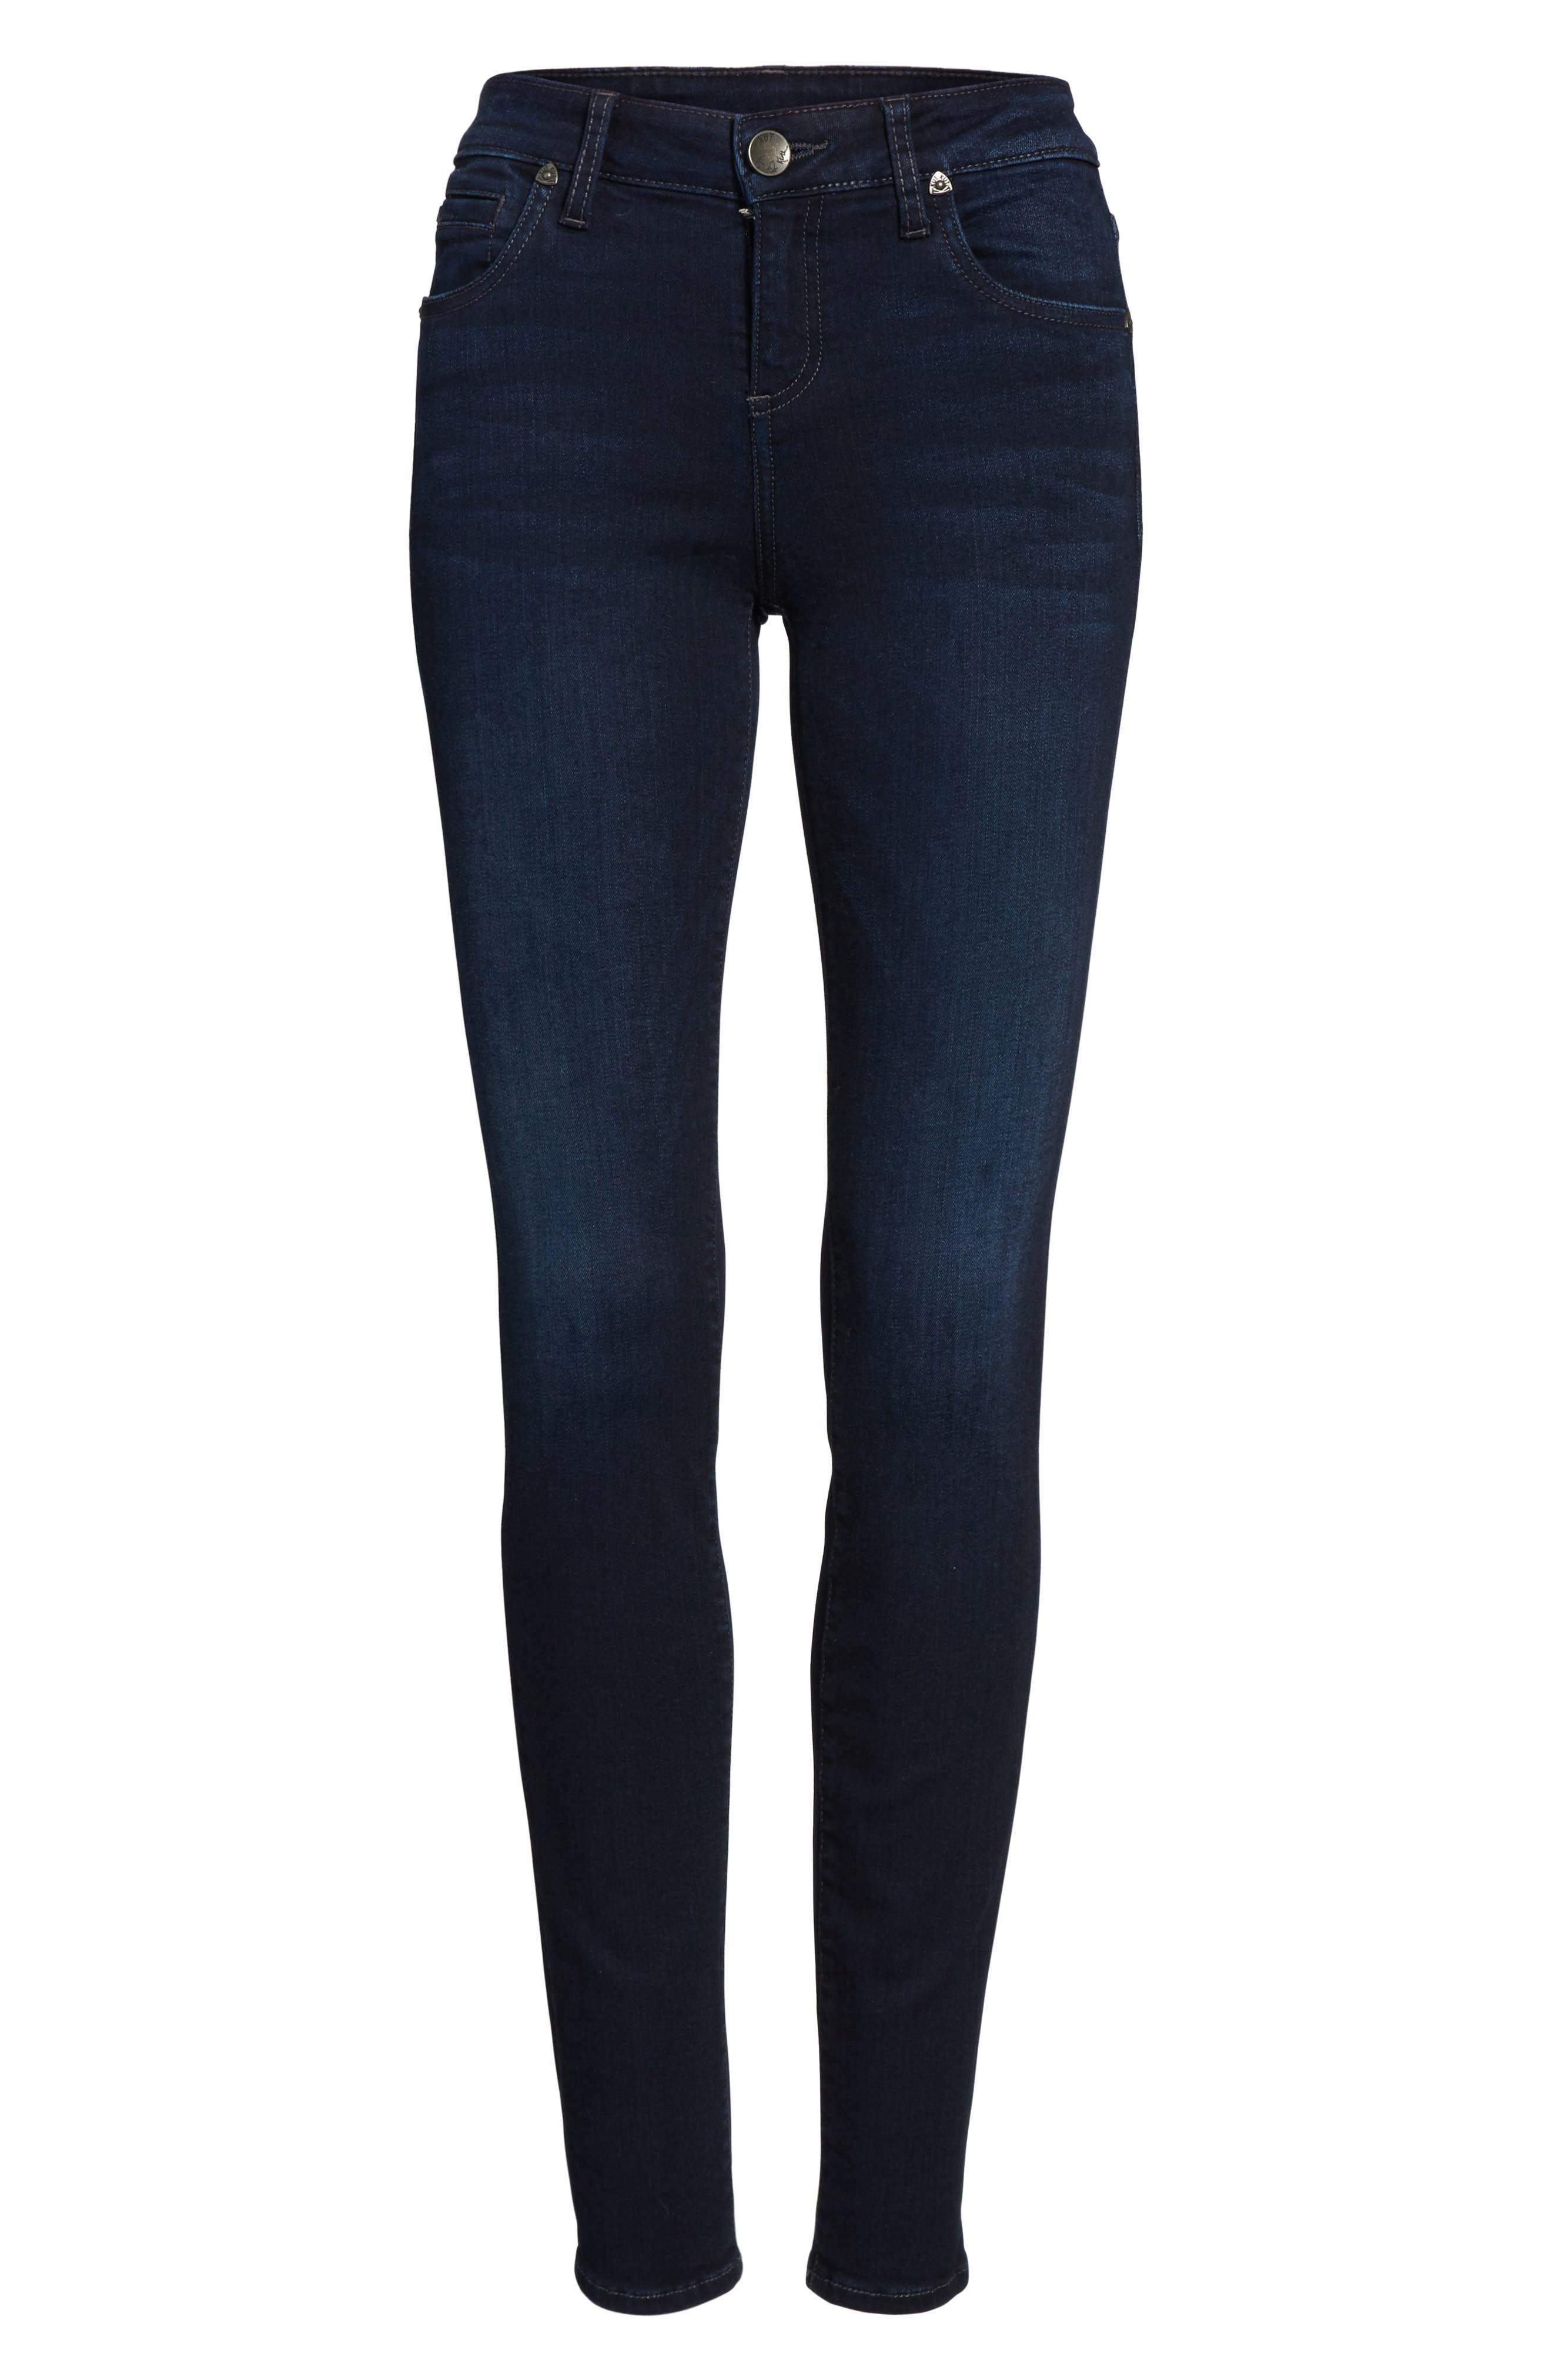 Diana Stretch Skinny Jeans,                             Alternate thumbnail 6, color,                             490